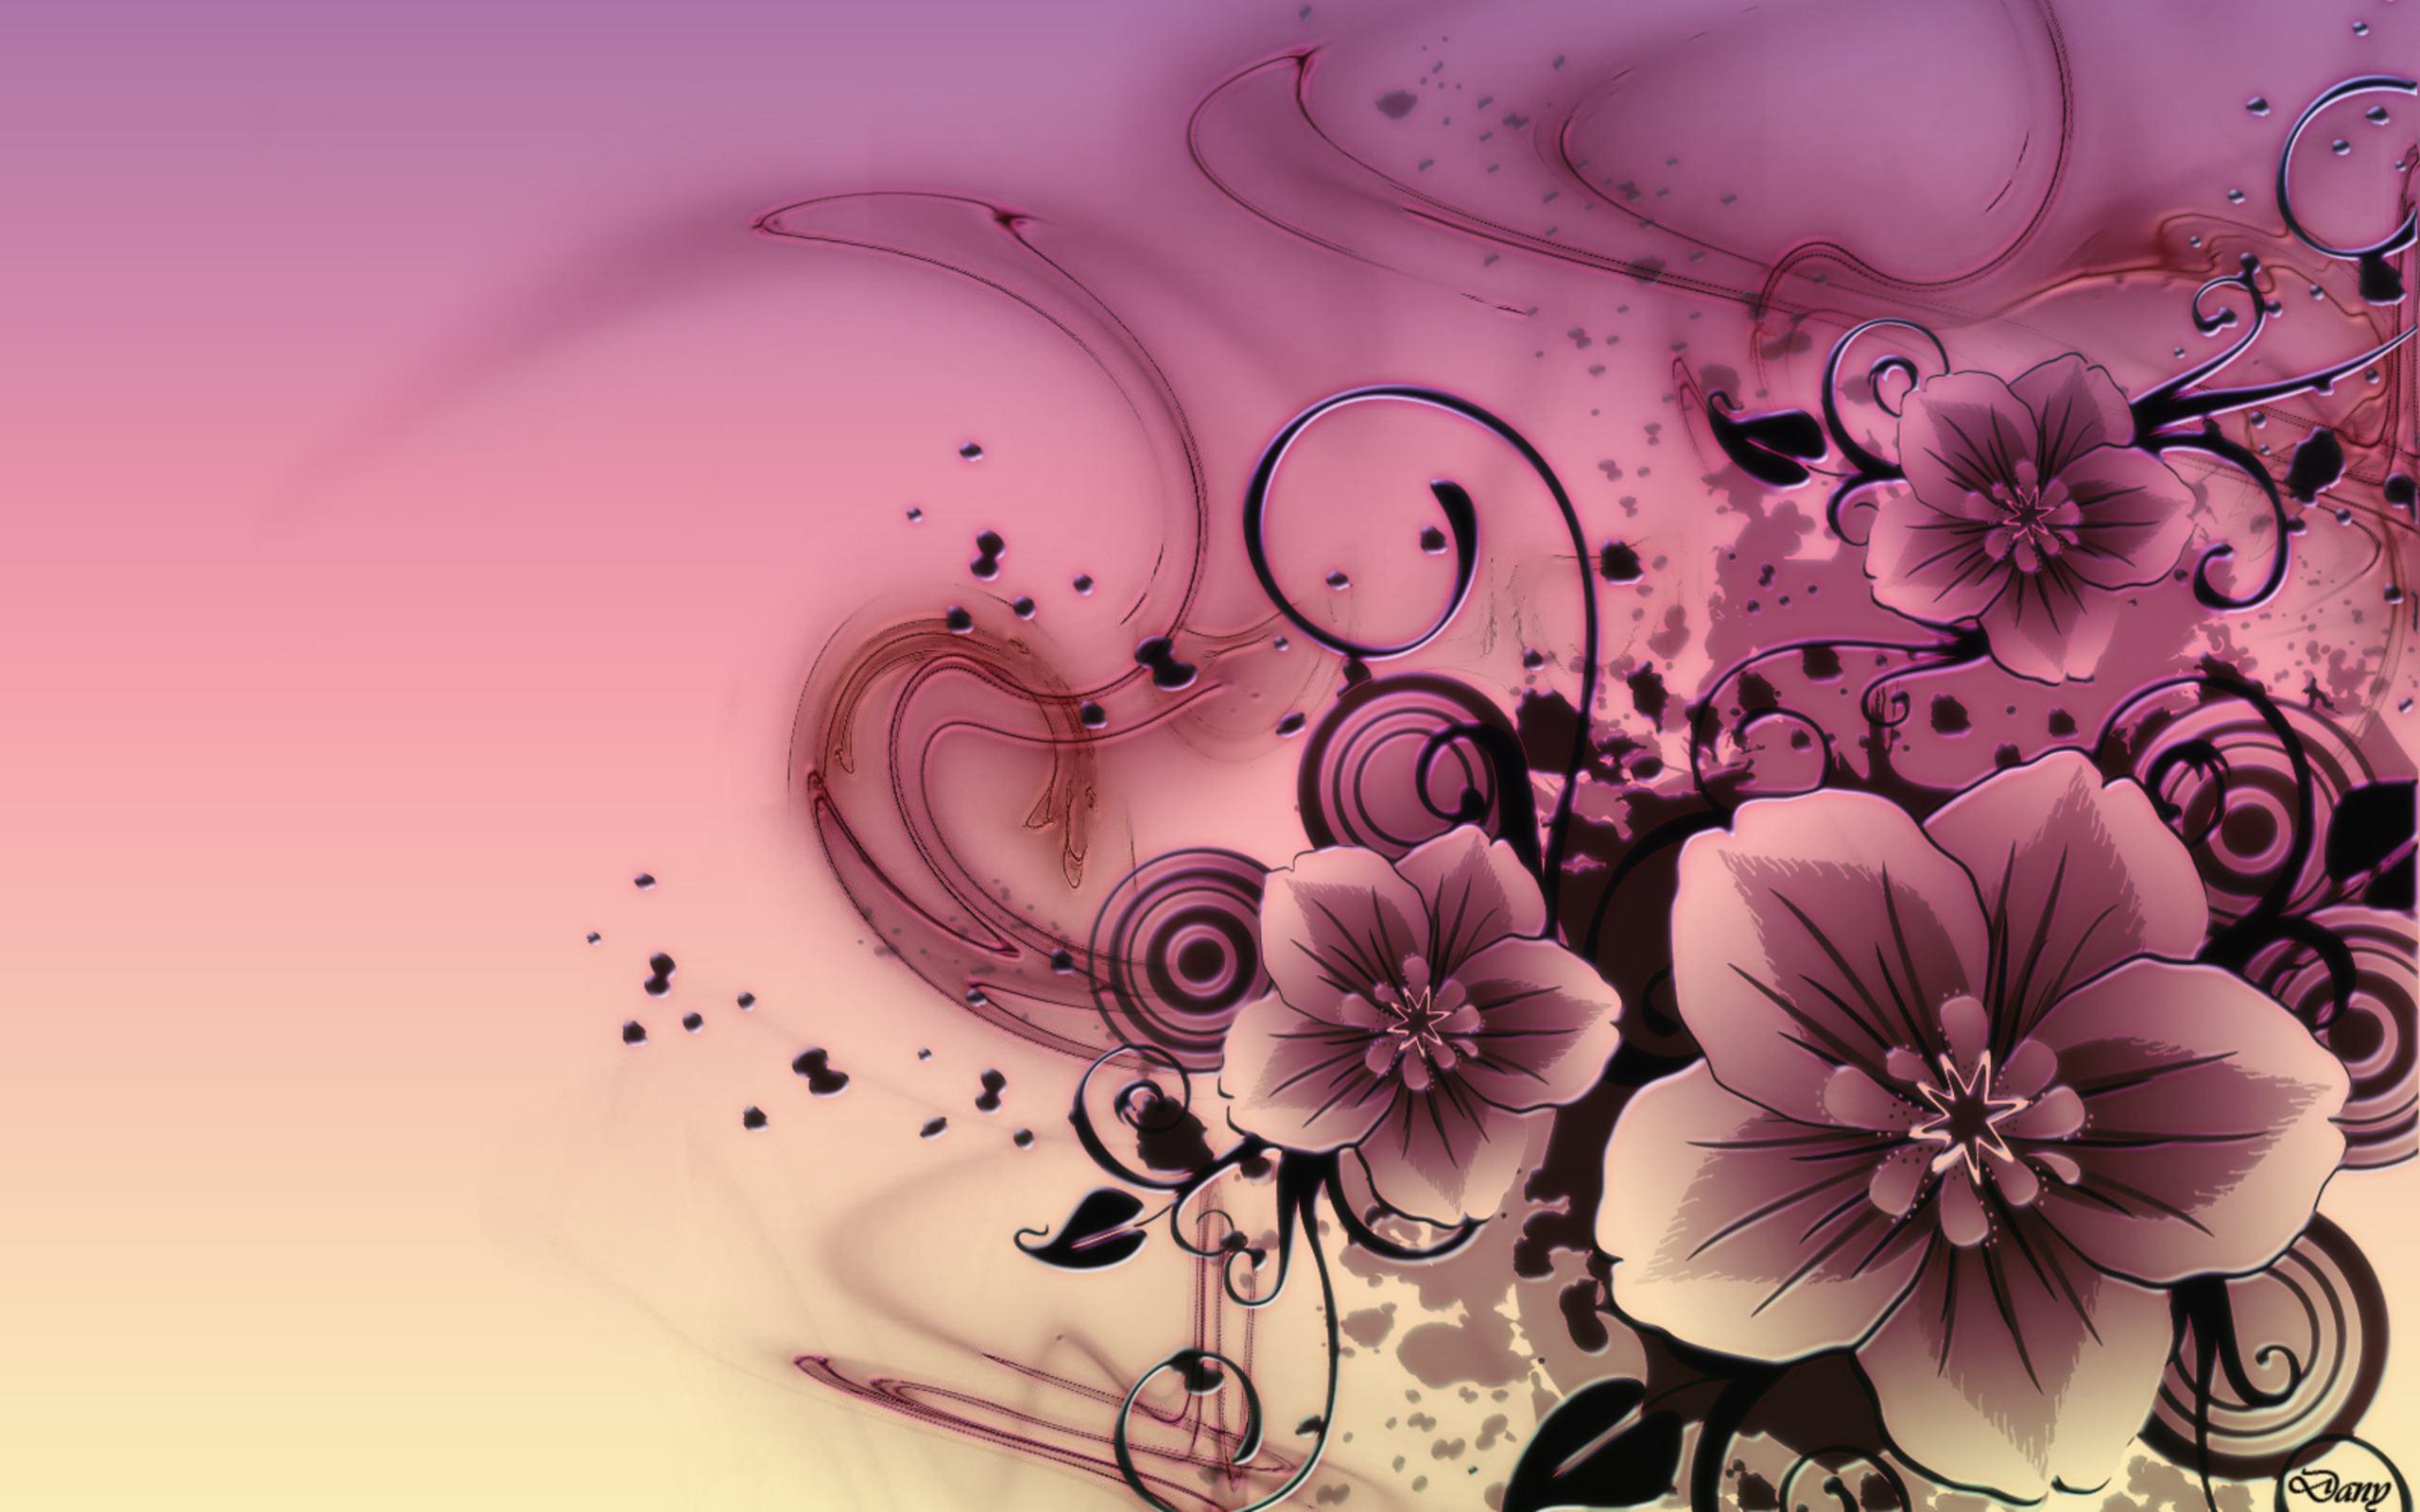 Abstract Flowers Hd Desktop Wallpaper Definition Fullscreen Wa ...